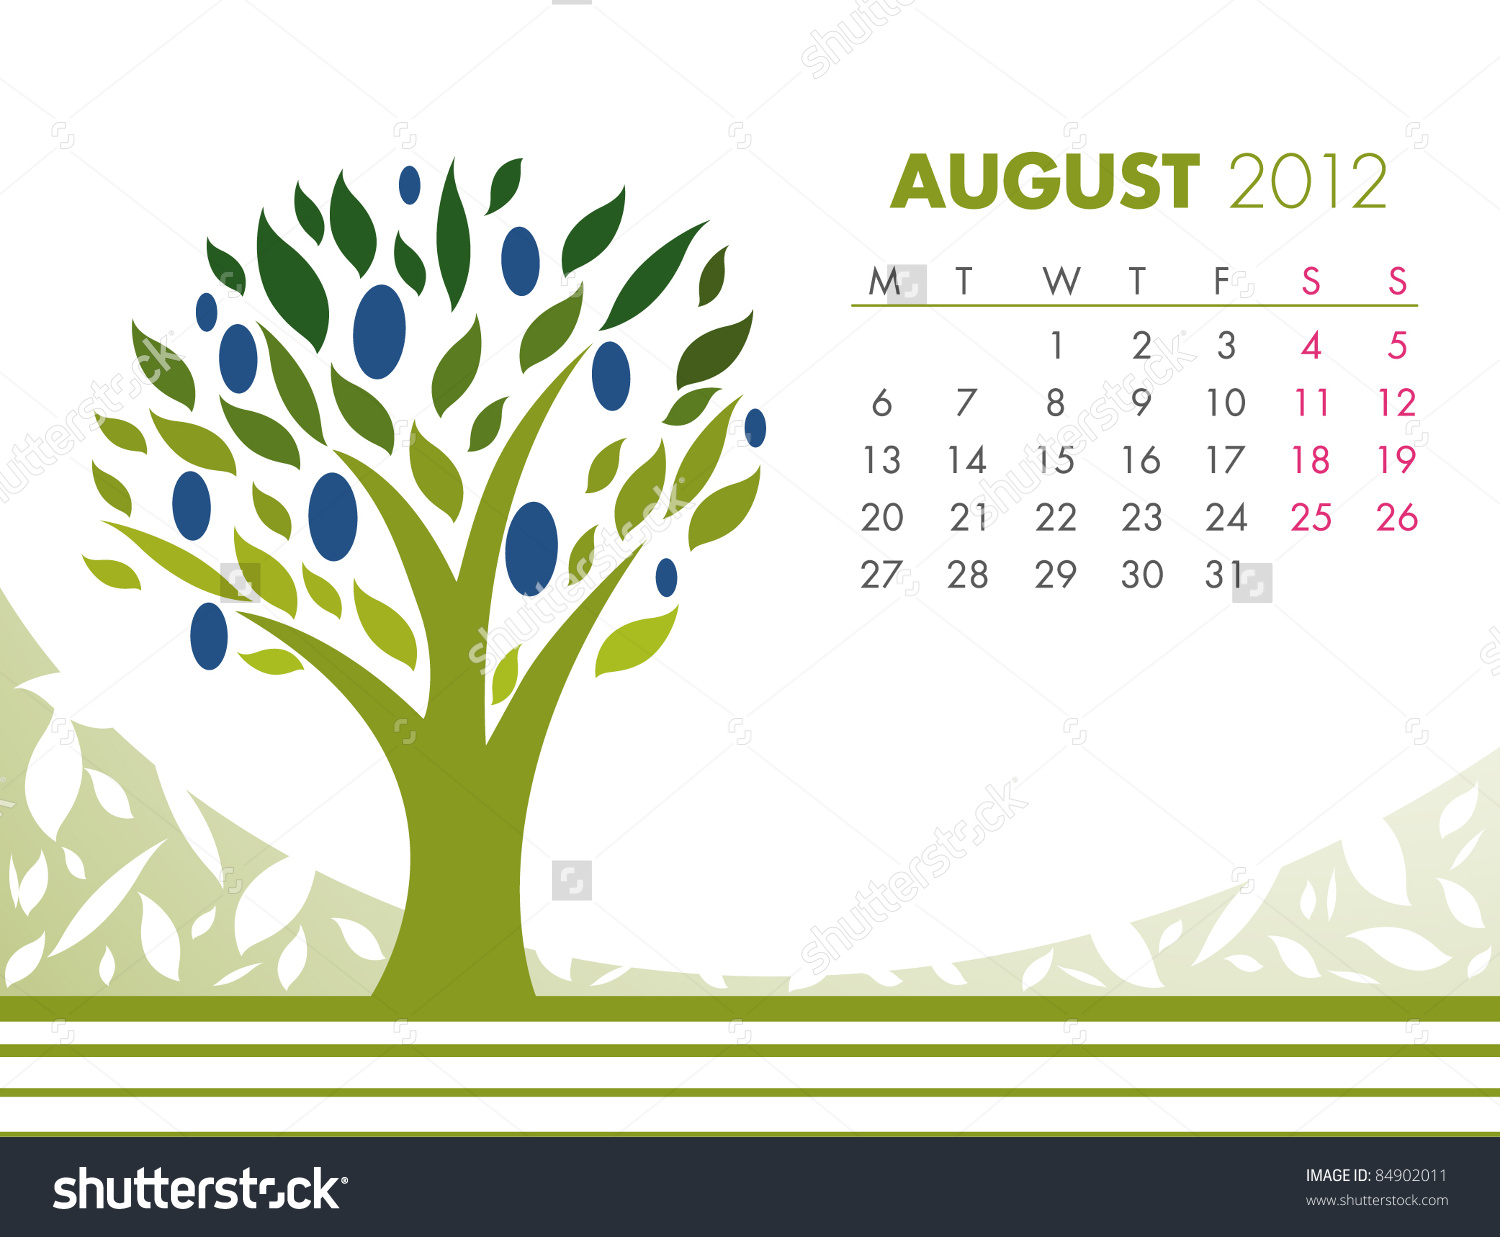 August Tree Calendar 2012 Vector Stock Vector 84902011.